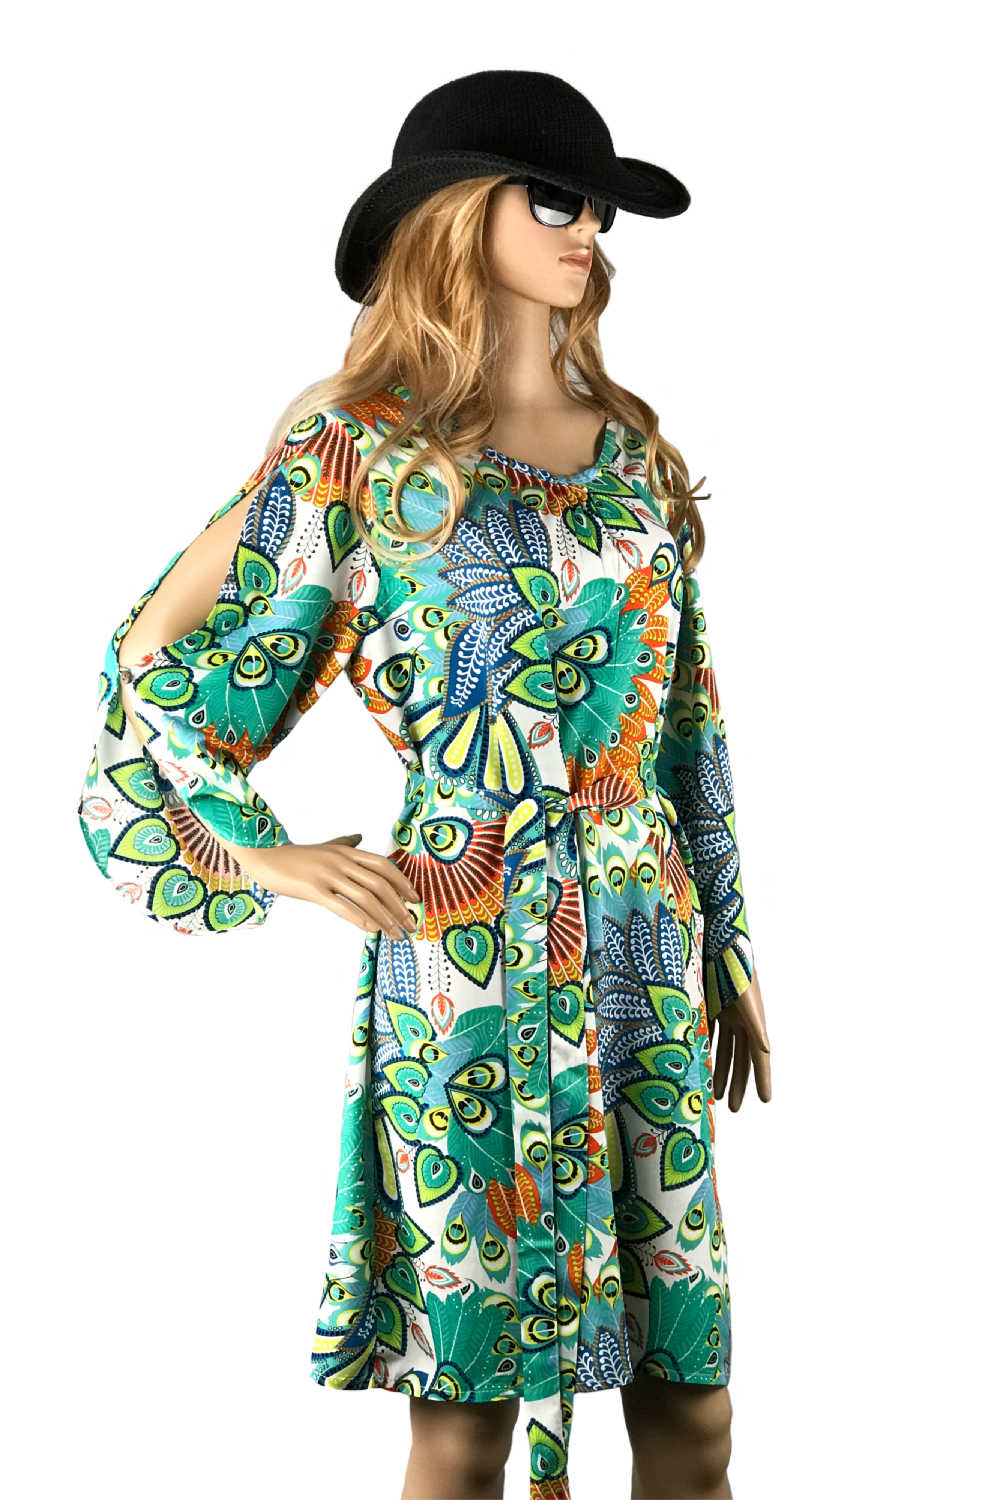 summer-dress-emerald-green-white-orange-peacock-design